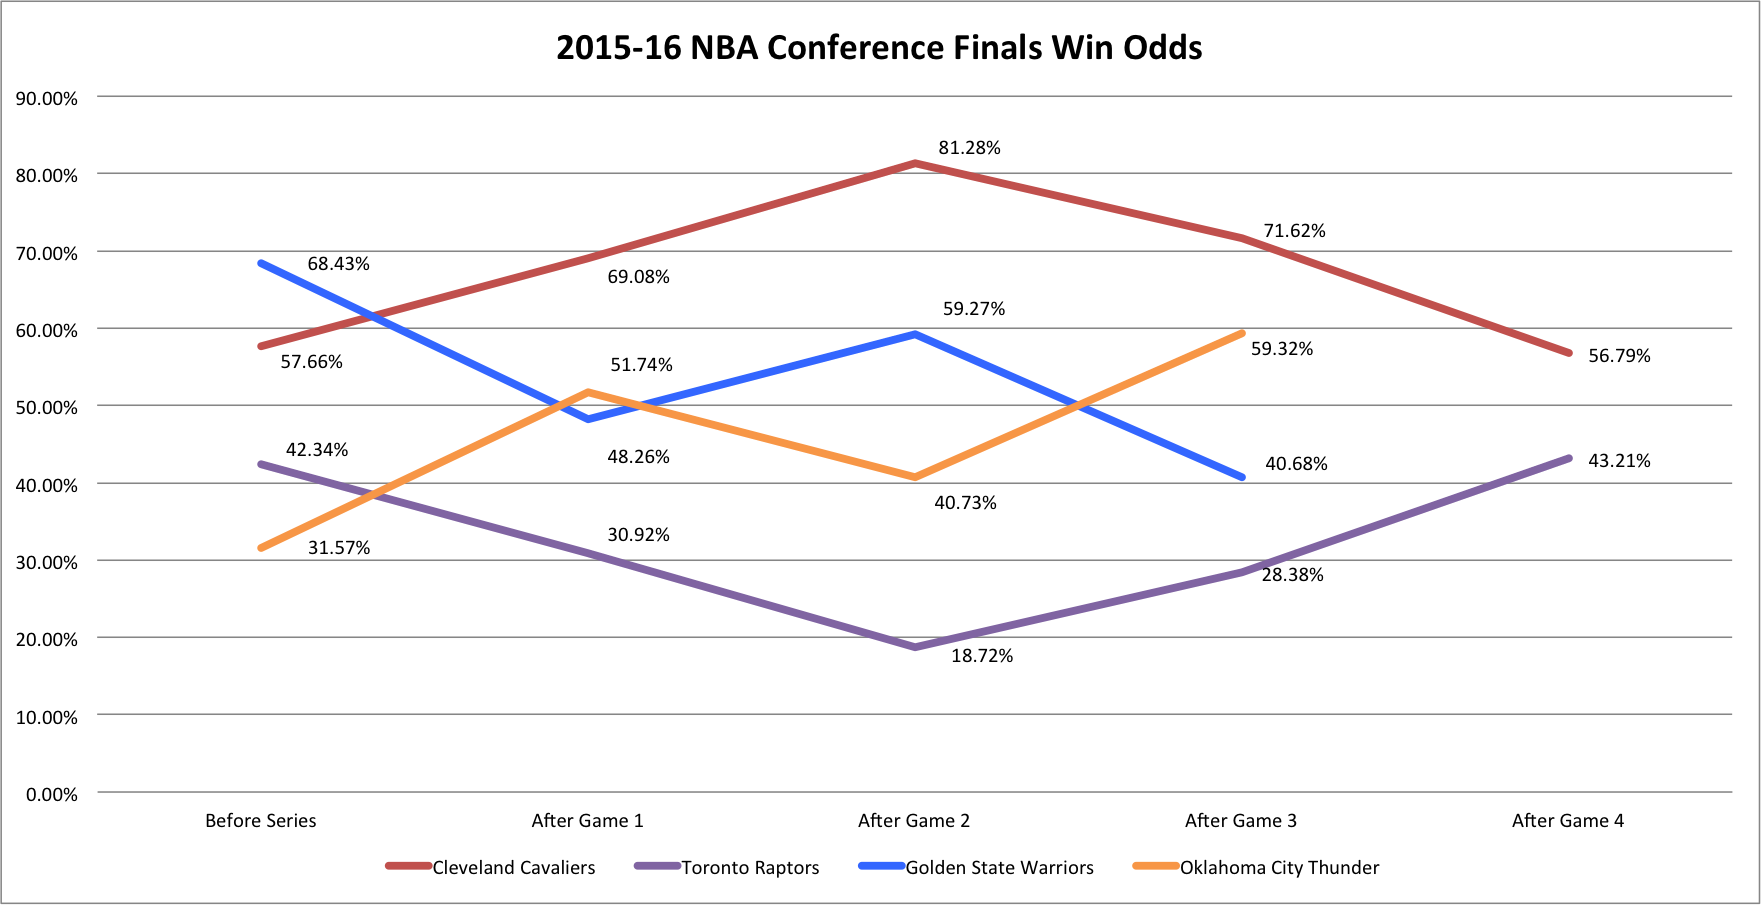 2015-16 NBA Conference Finals Win Odds